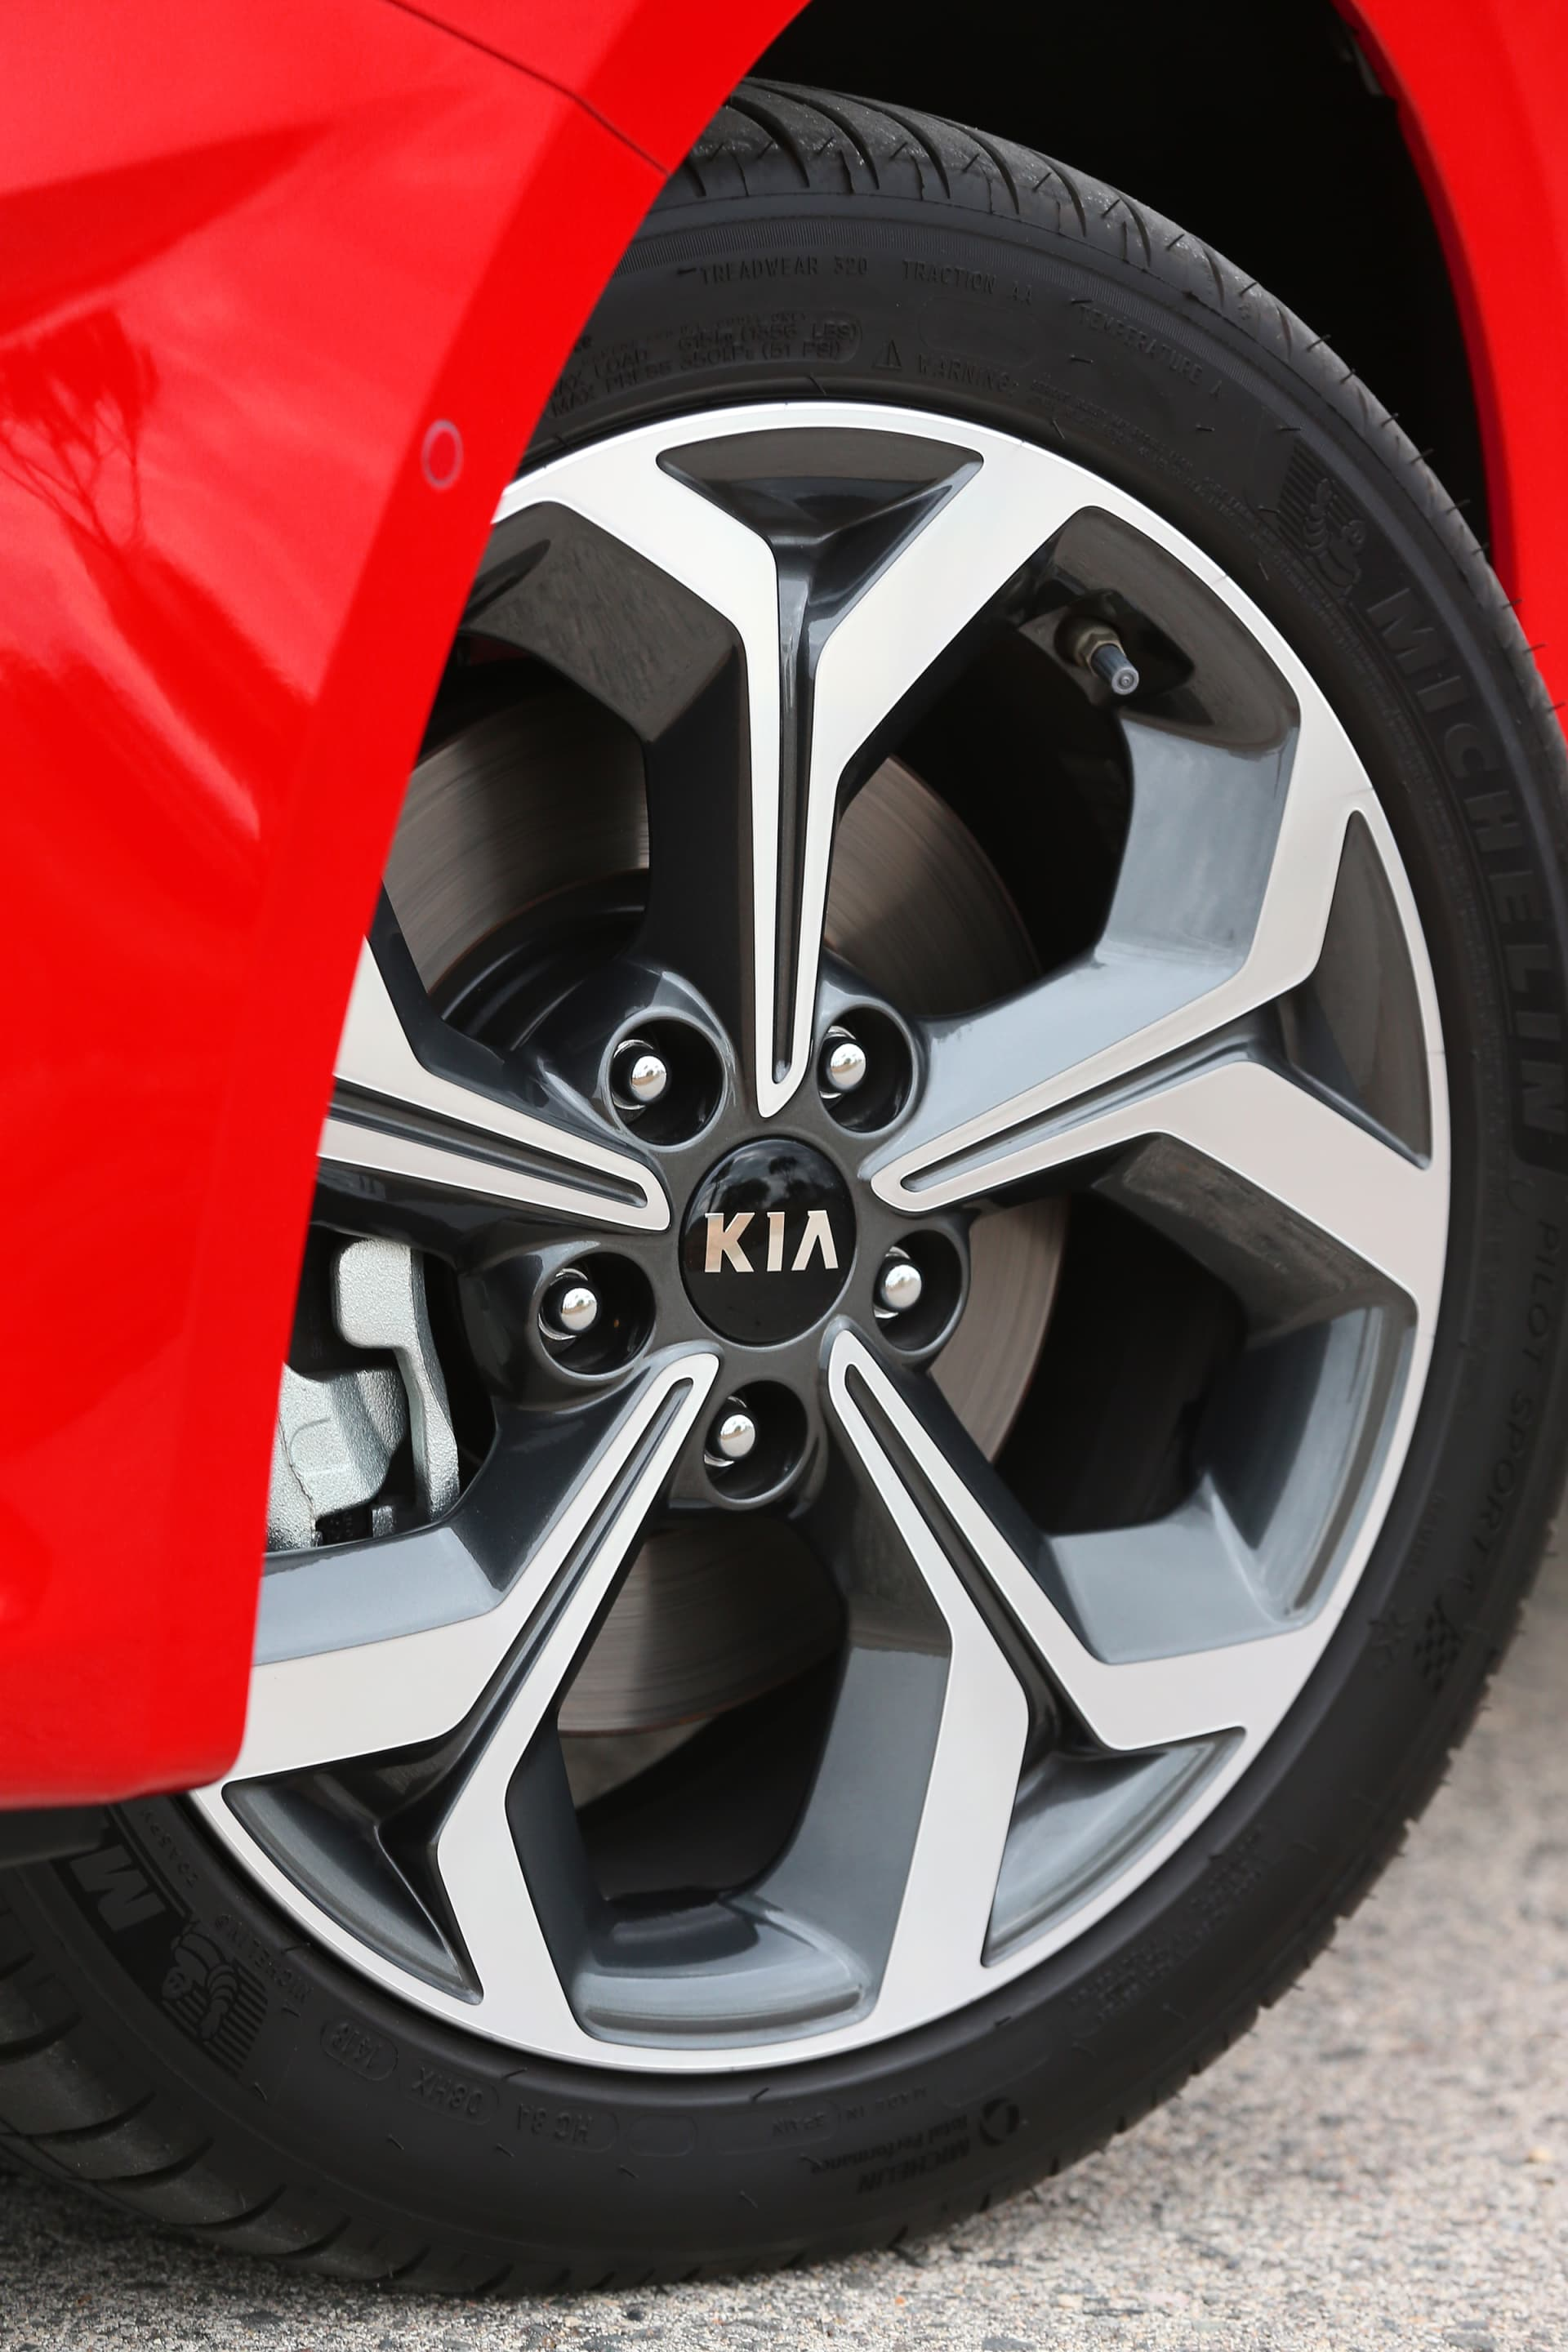 Kia Ceed 1 4 T Gdi 7 Dct Transmission 140hp Track Red 38